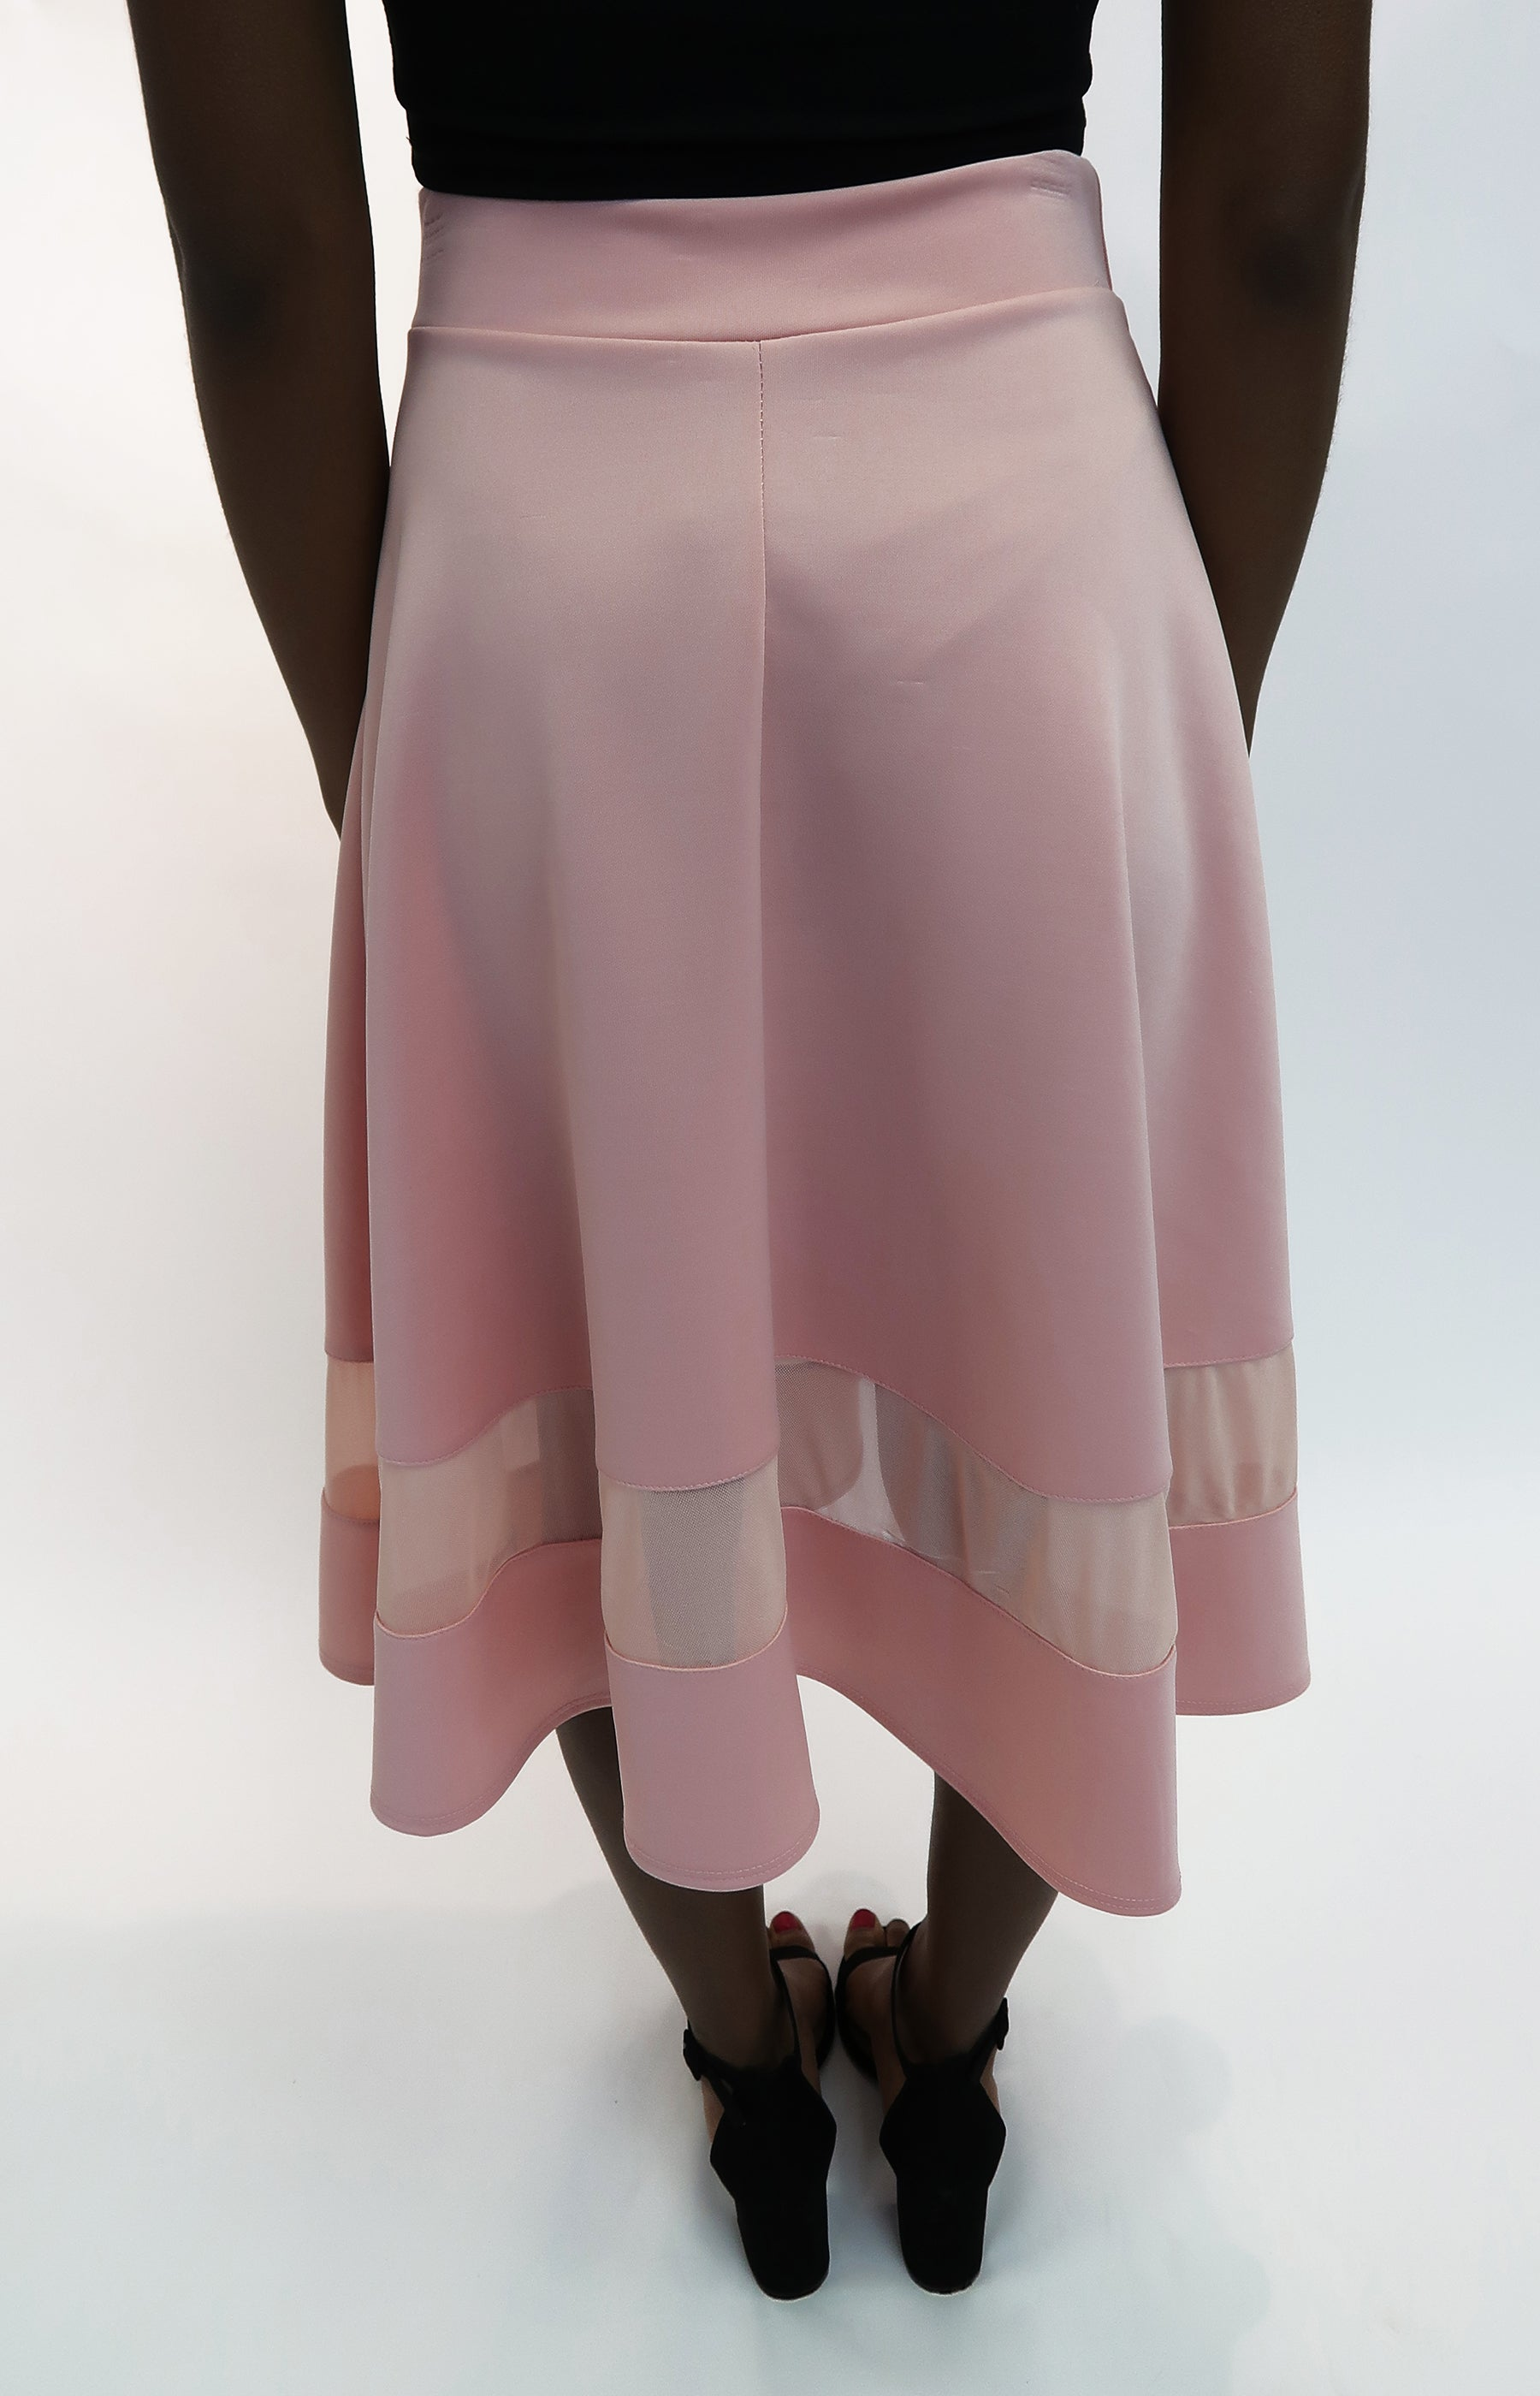 A-Line Flared midi skirt in light pink